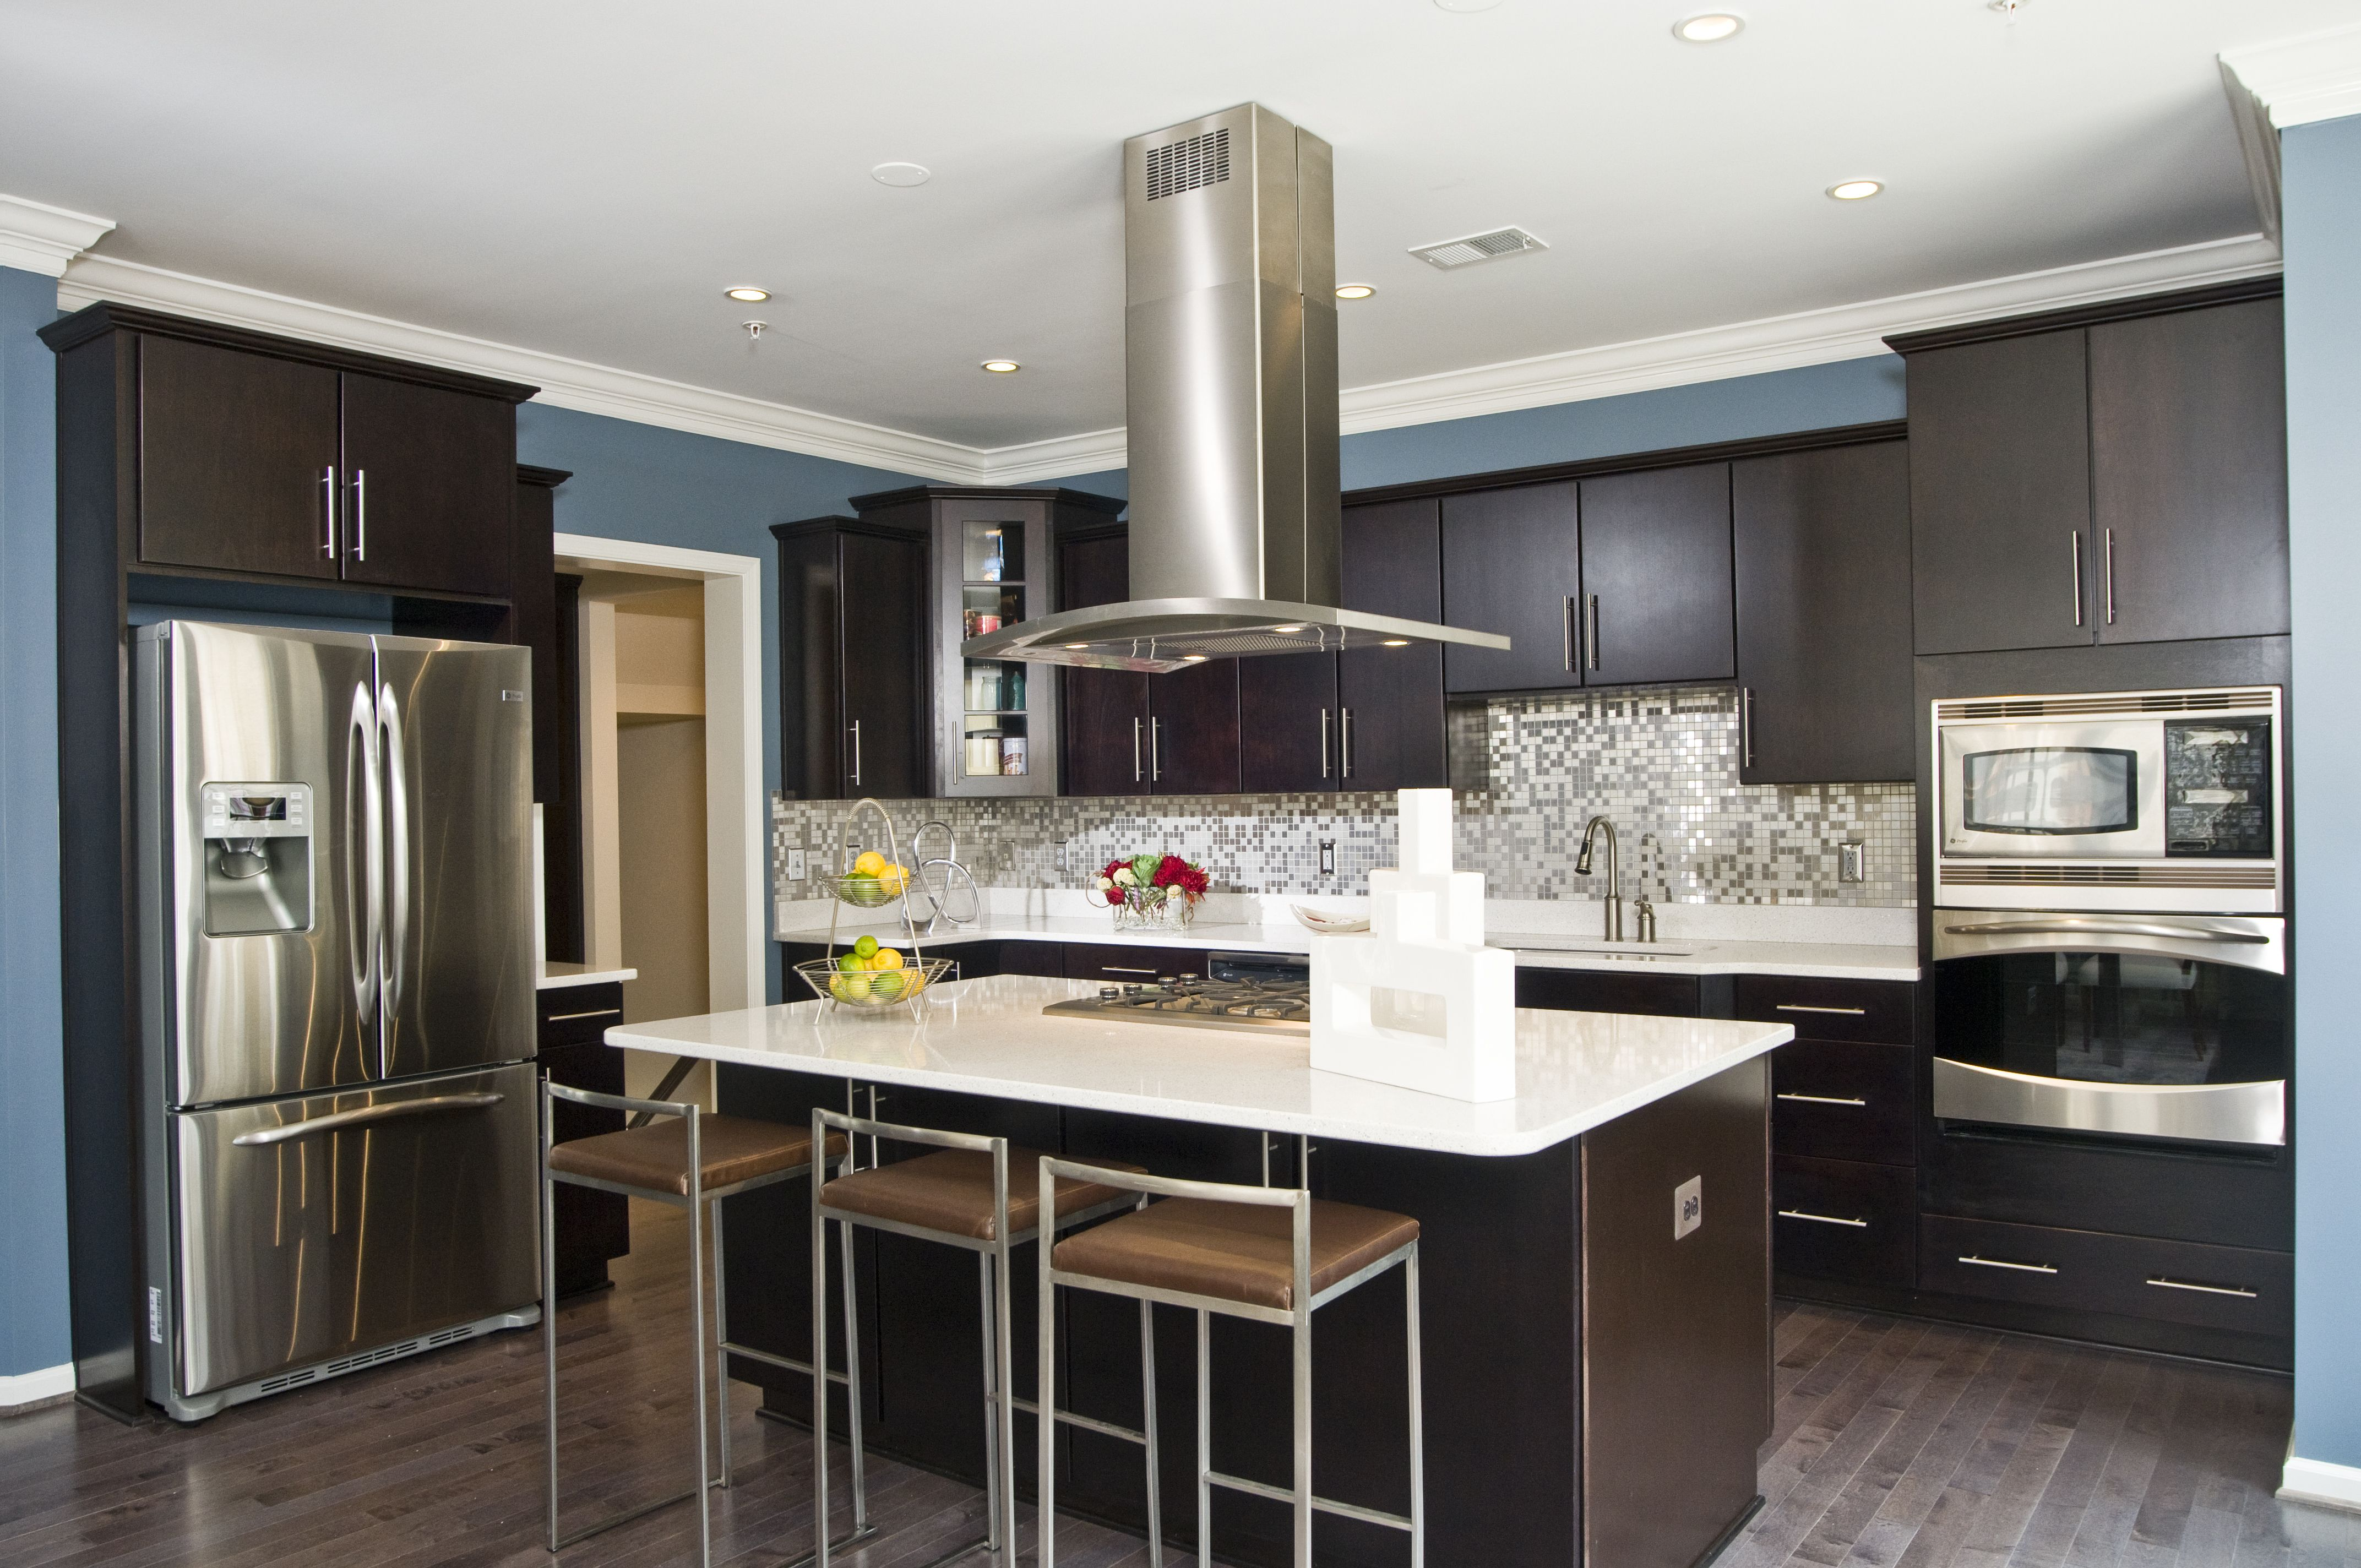 integrity homes gourmet kitchen at national harbor md on awesome modern kitchen design ideas recommendations for you id=62179